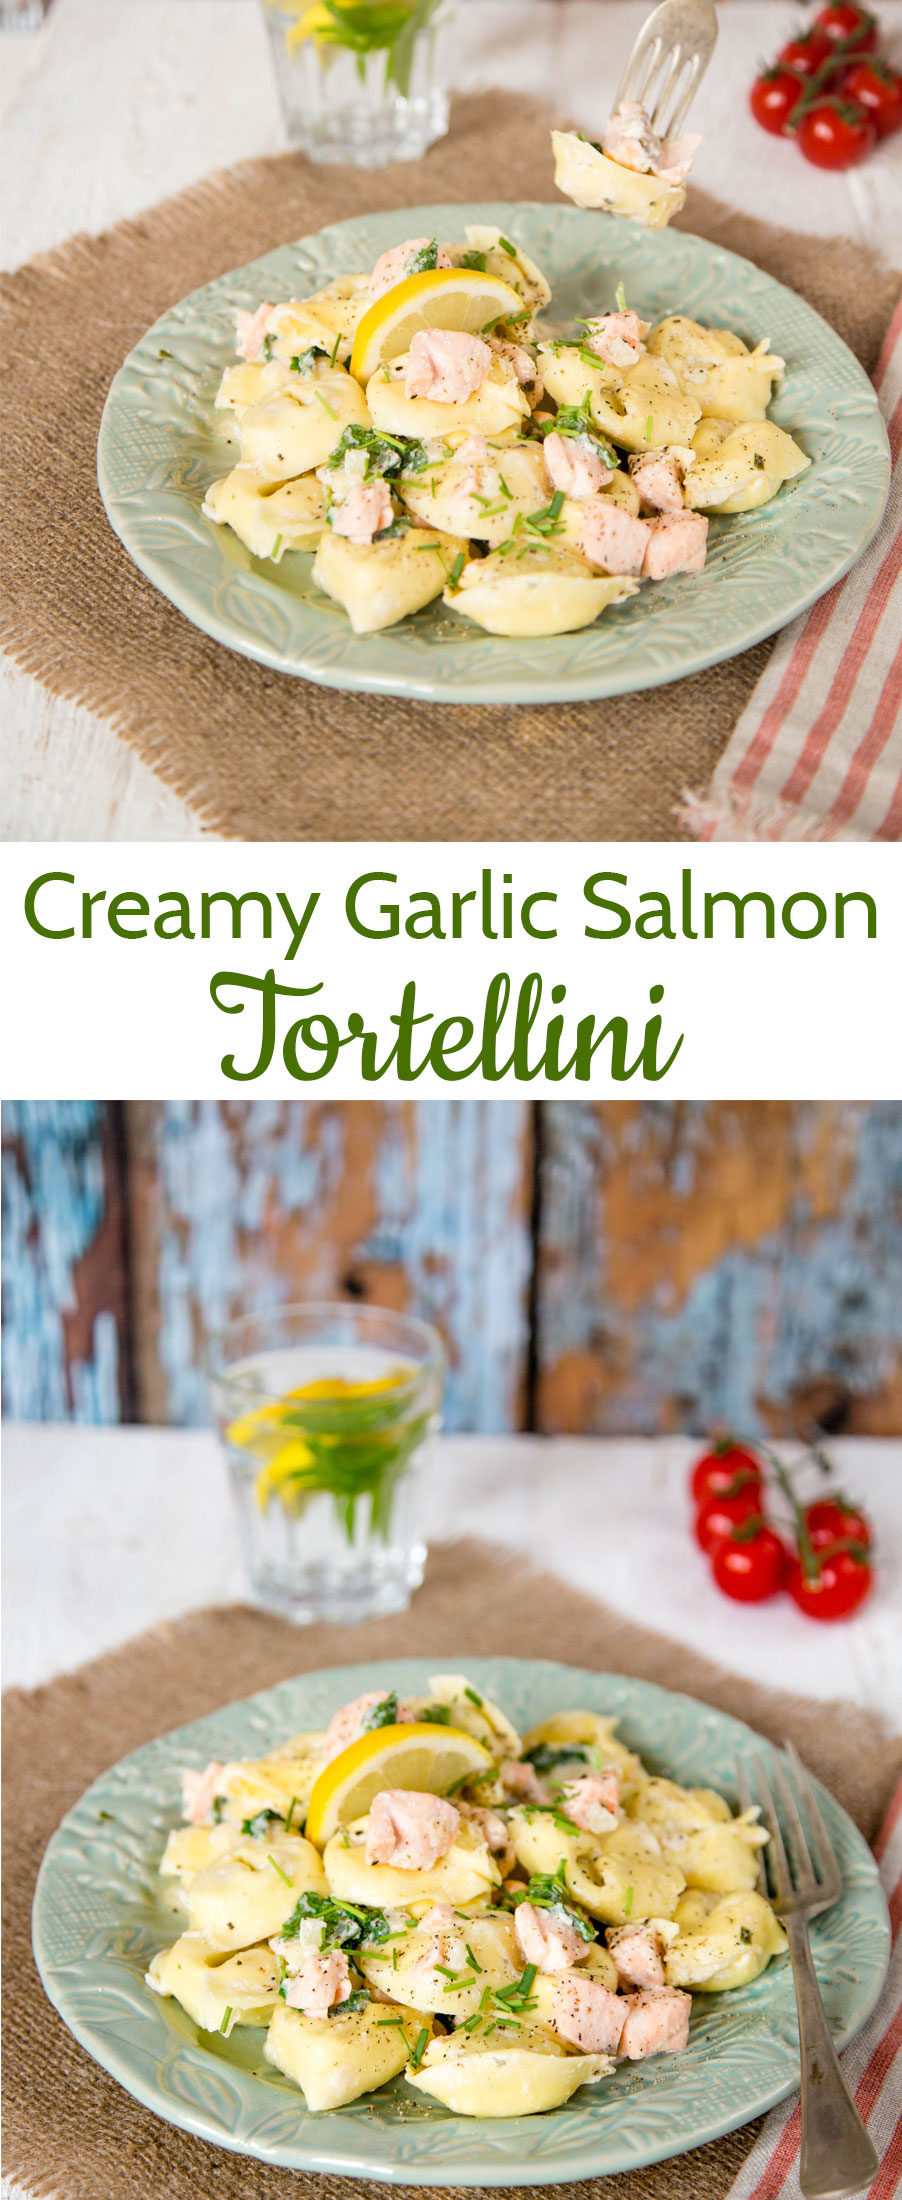 This tortellini with salmon in a cream garlic sauce, is big on taste but low on effort, uses a number of cheat ingredients and takes less than 10 minutes to cook.